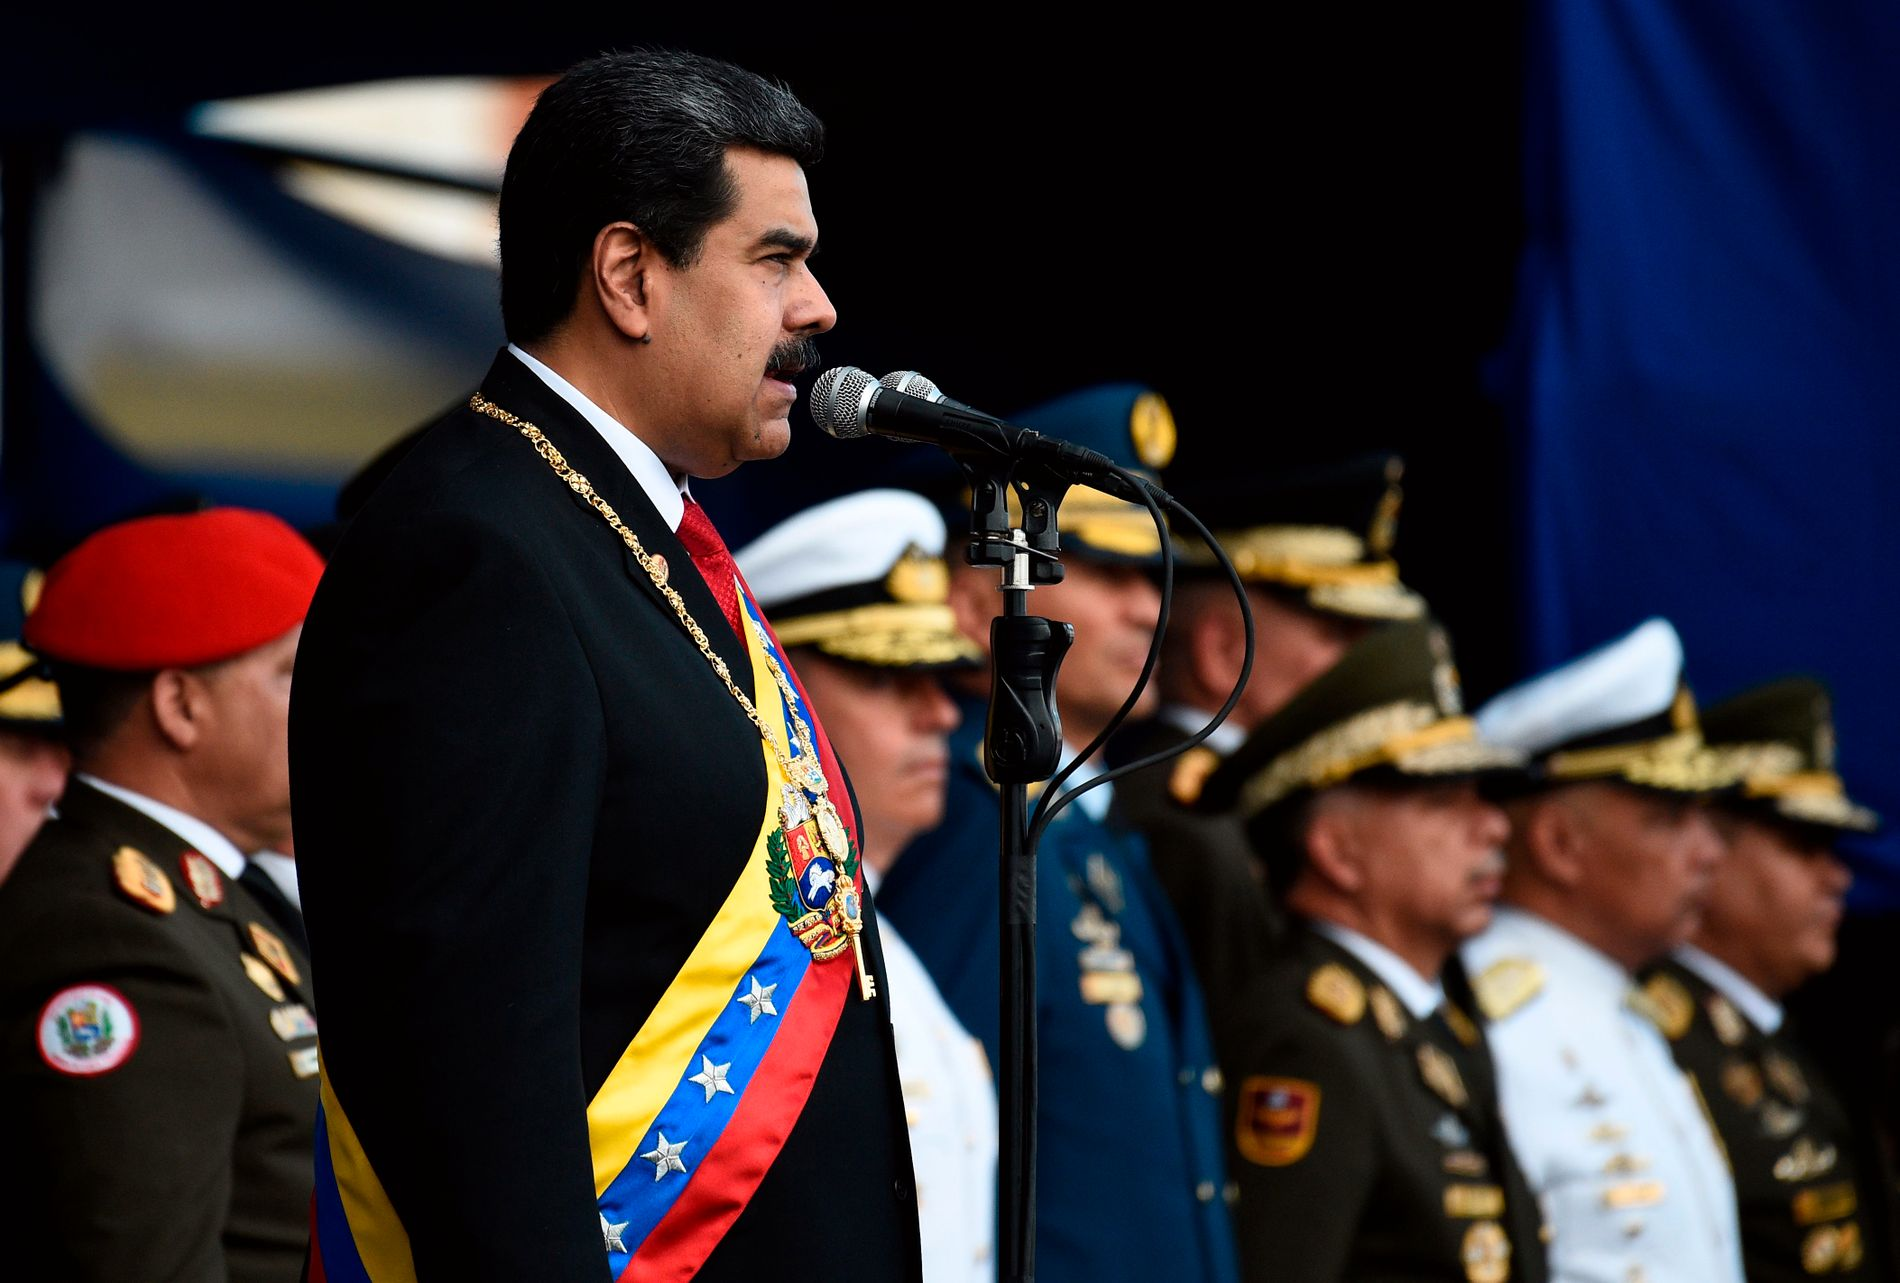 UNDER PRESS: Venezuelas president Nicolas Maduro.